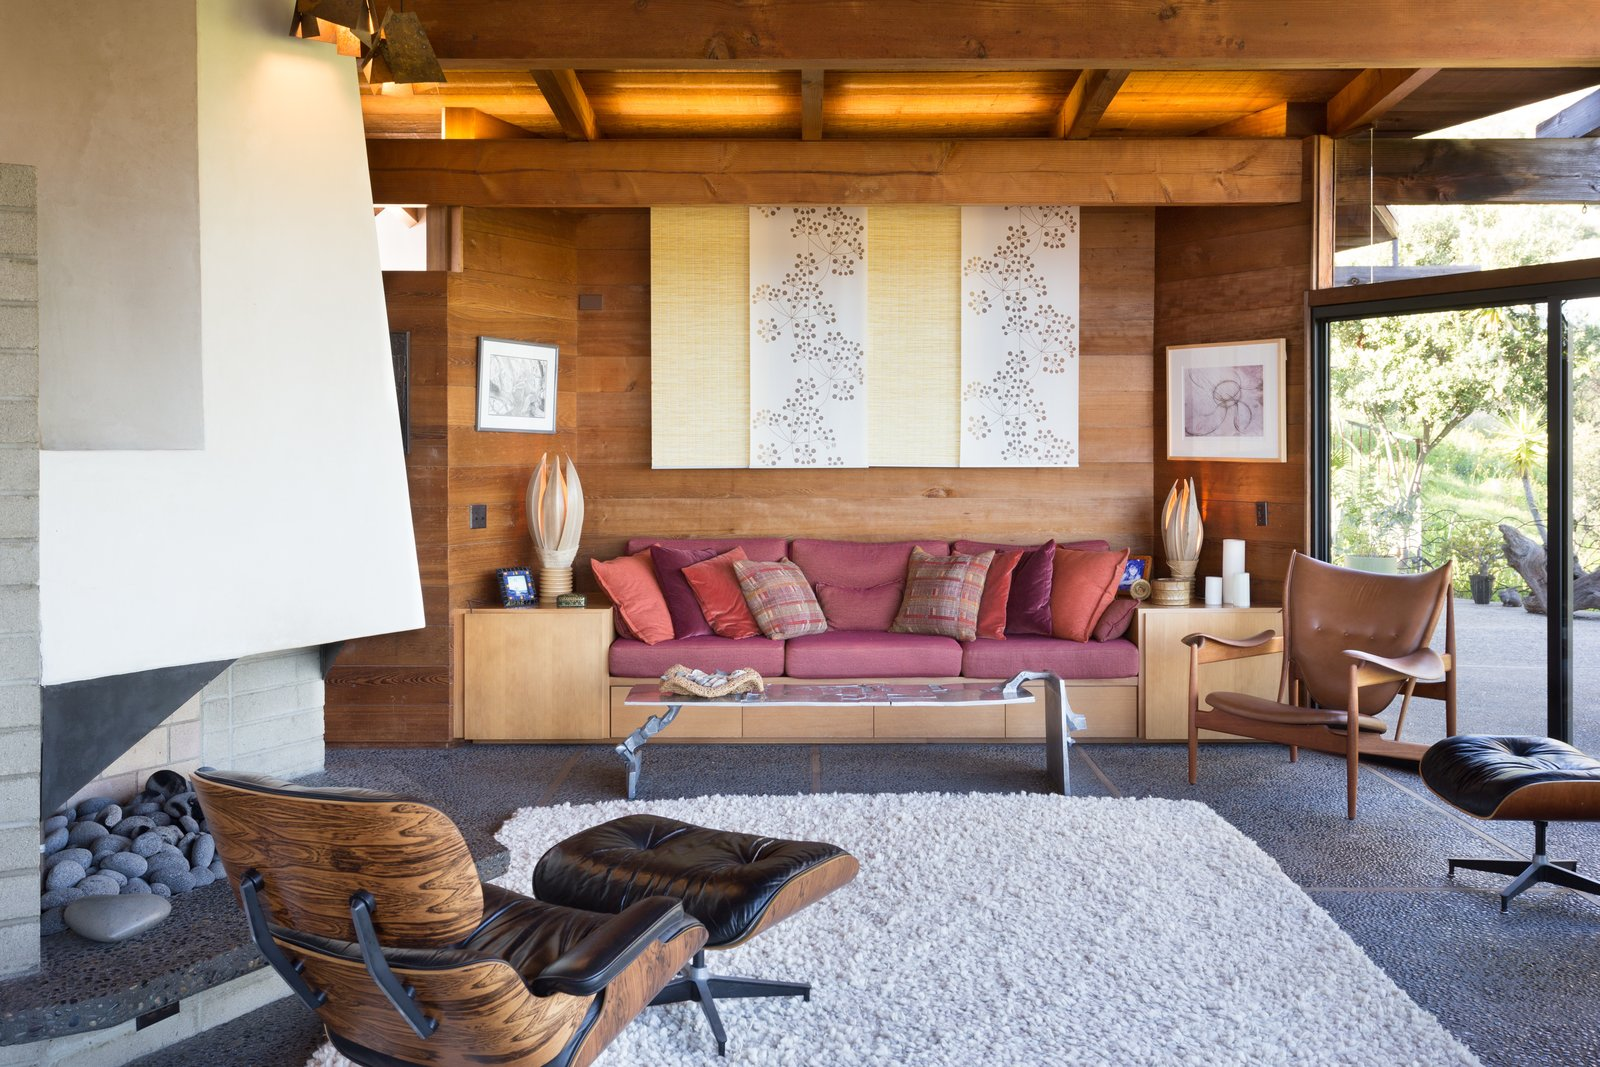 Living Room, Wood Burning Fireplace, Bench, Chair, Coffee Tables, and Concrete Floor  Photo 9 of 13 in A 1974 Masterpiece Is Put on the Market by a Family Friend of the Late Julius Shulman